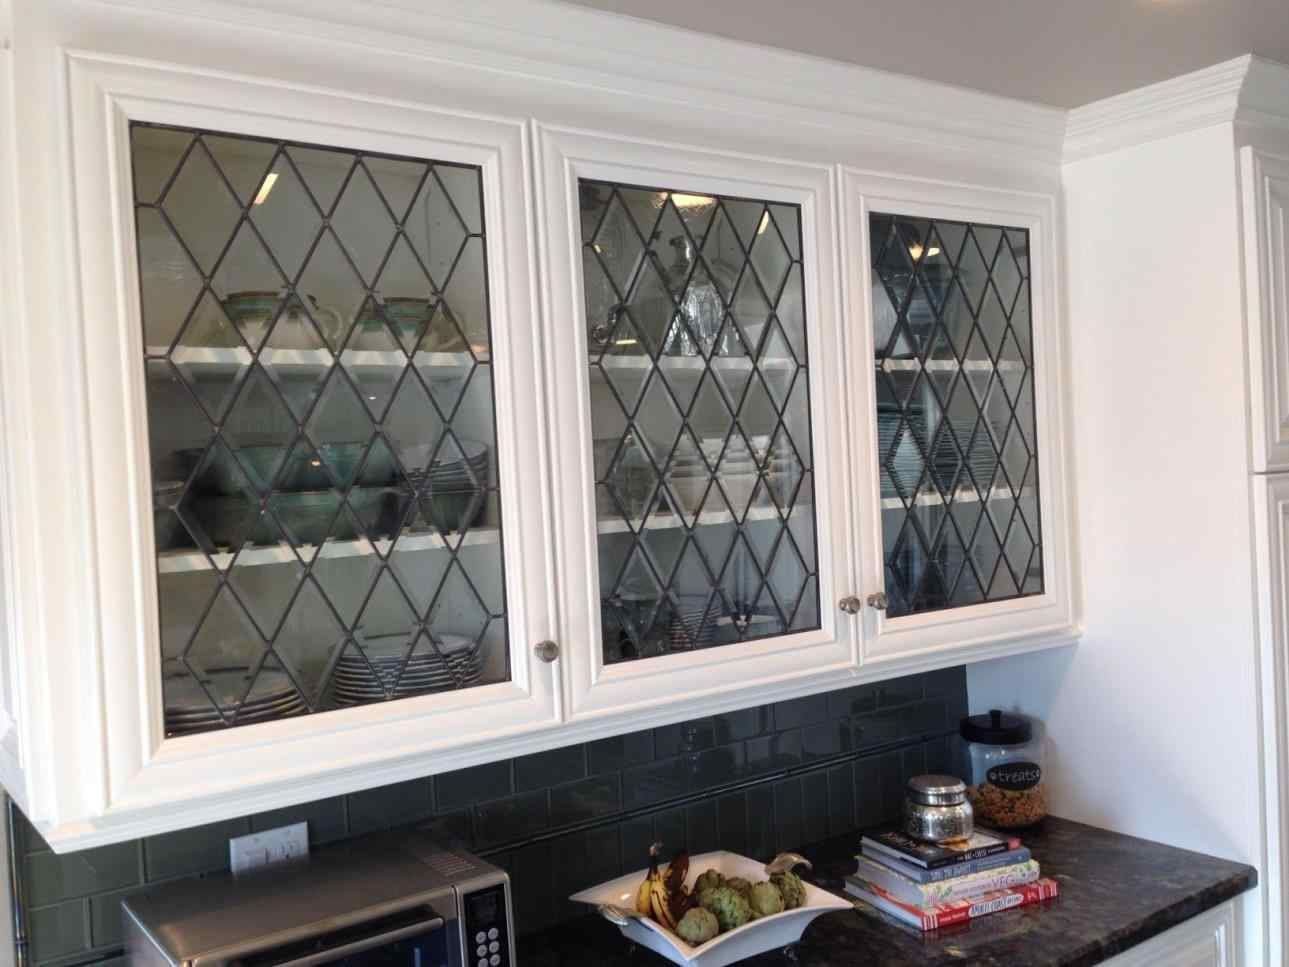 25 Awesome Glass Types For Kitchen Cabinet Doors Breakpr Glass Kitchen Cabinets Glass Kitchen Cabinet Doors Glass Cabinet Doors